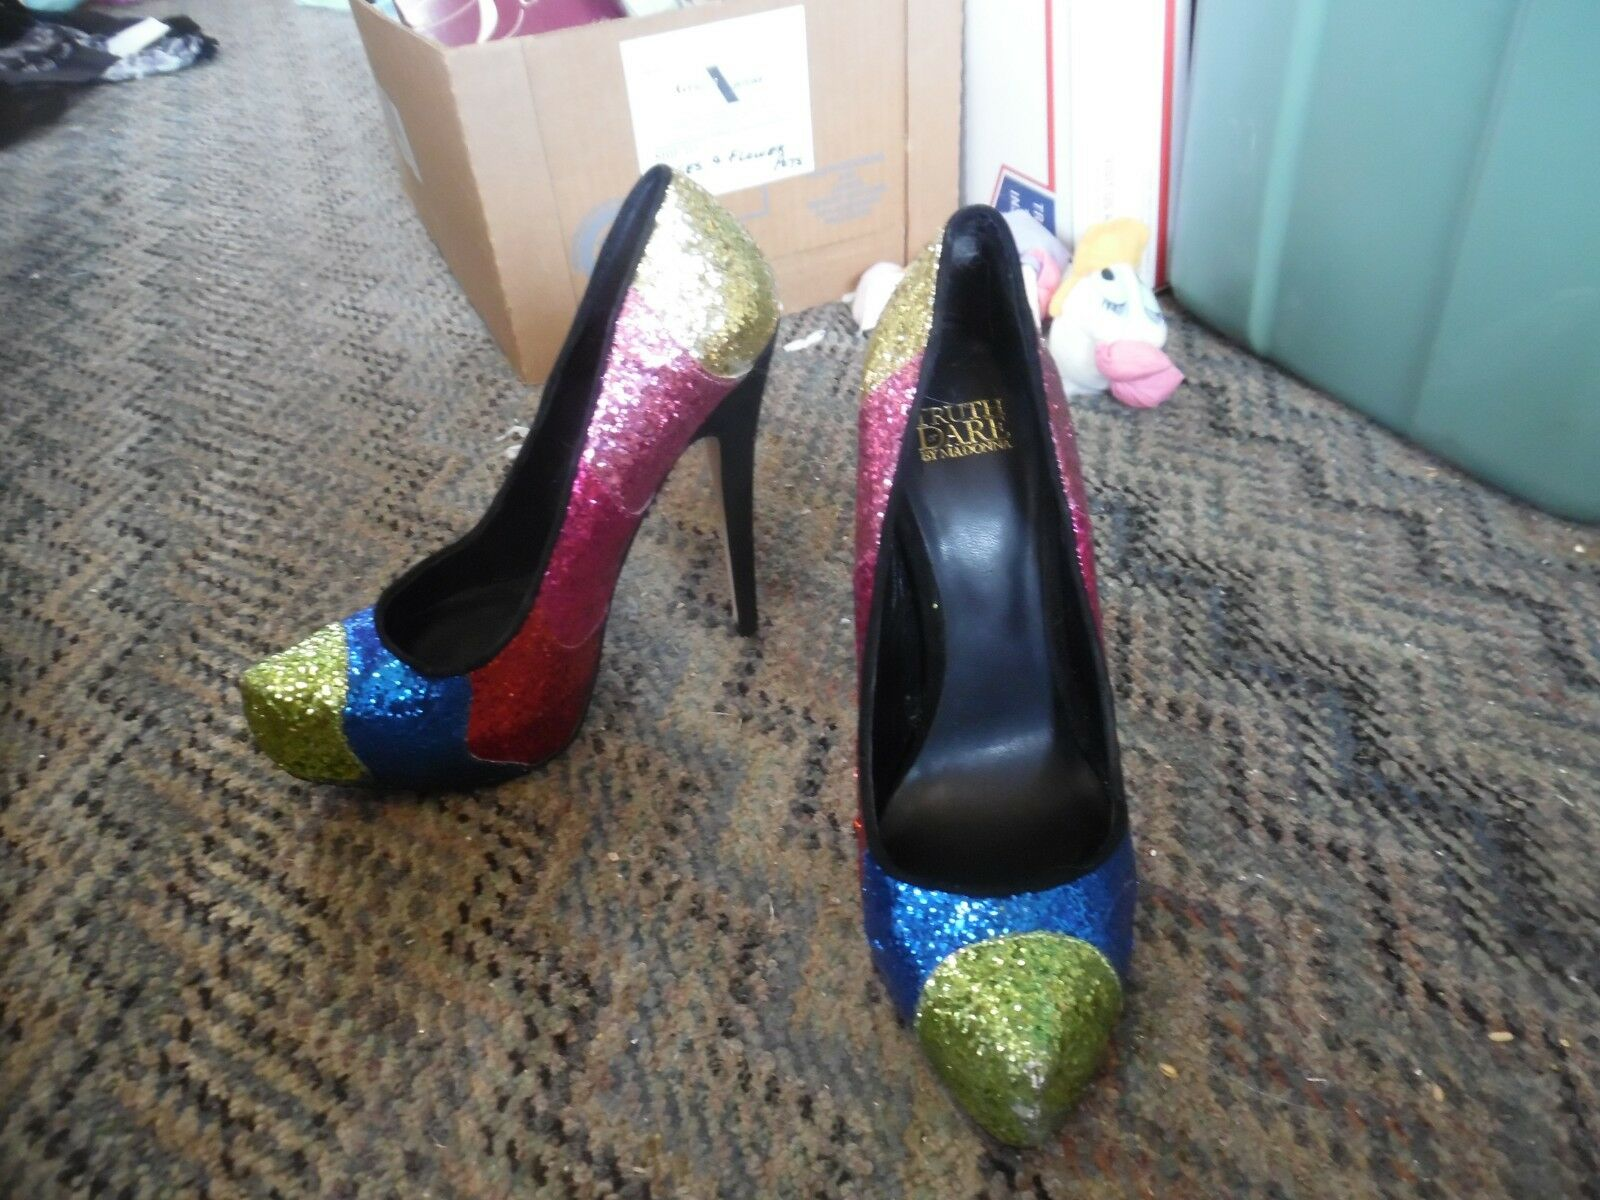 Truth or Dare by Mawomen colorful glitter  high heel pump shoes size 9 NEW